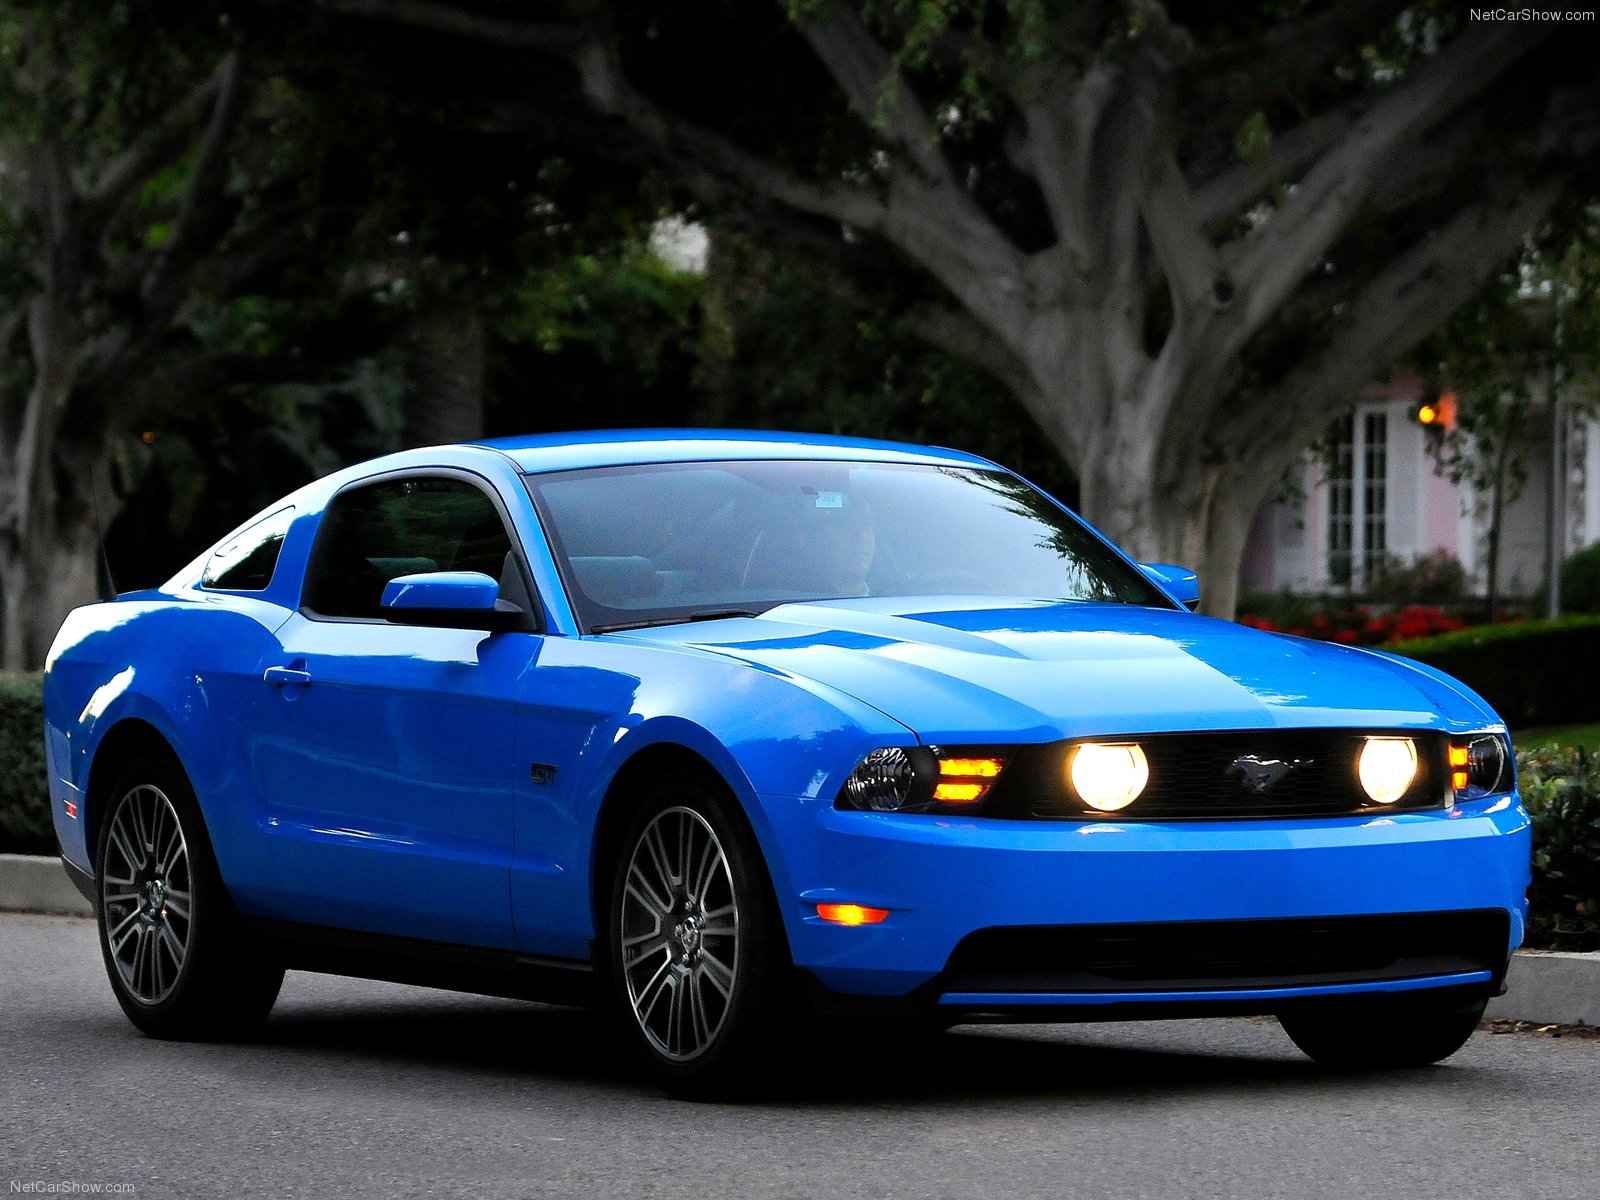 Ford Mustang 2 Door Coupe 2011